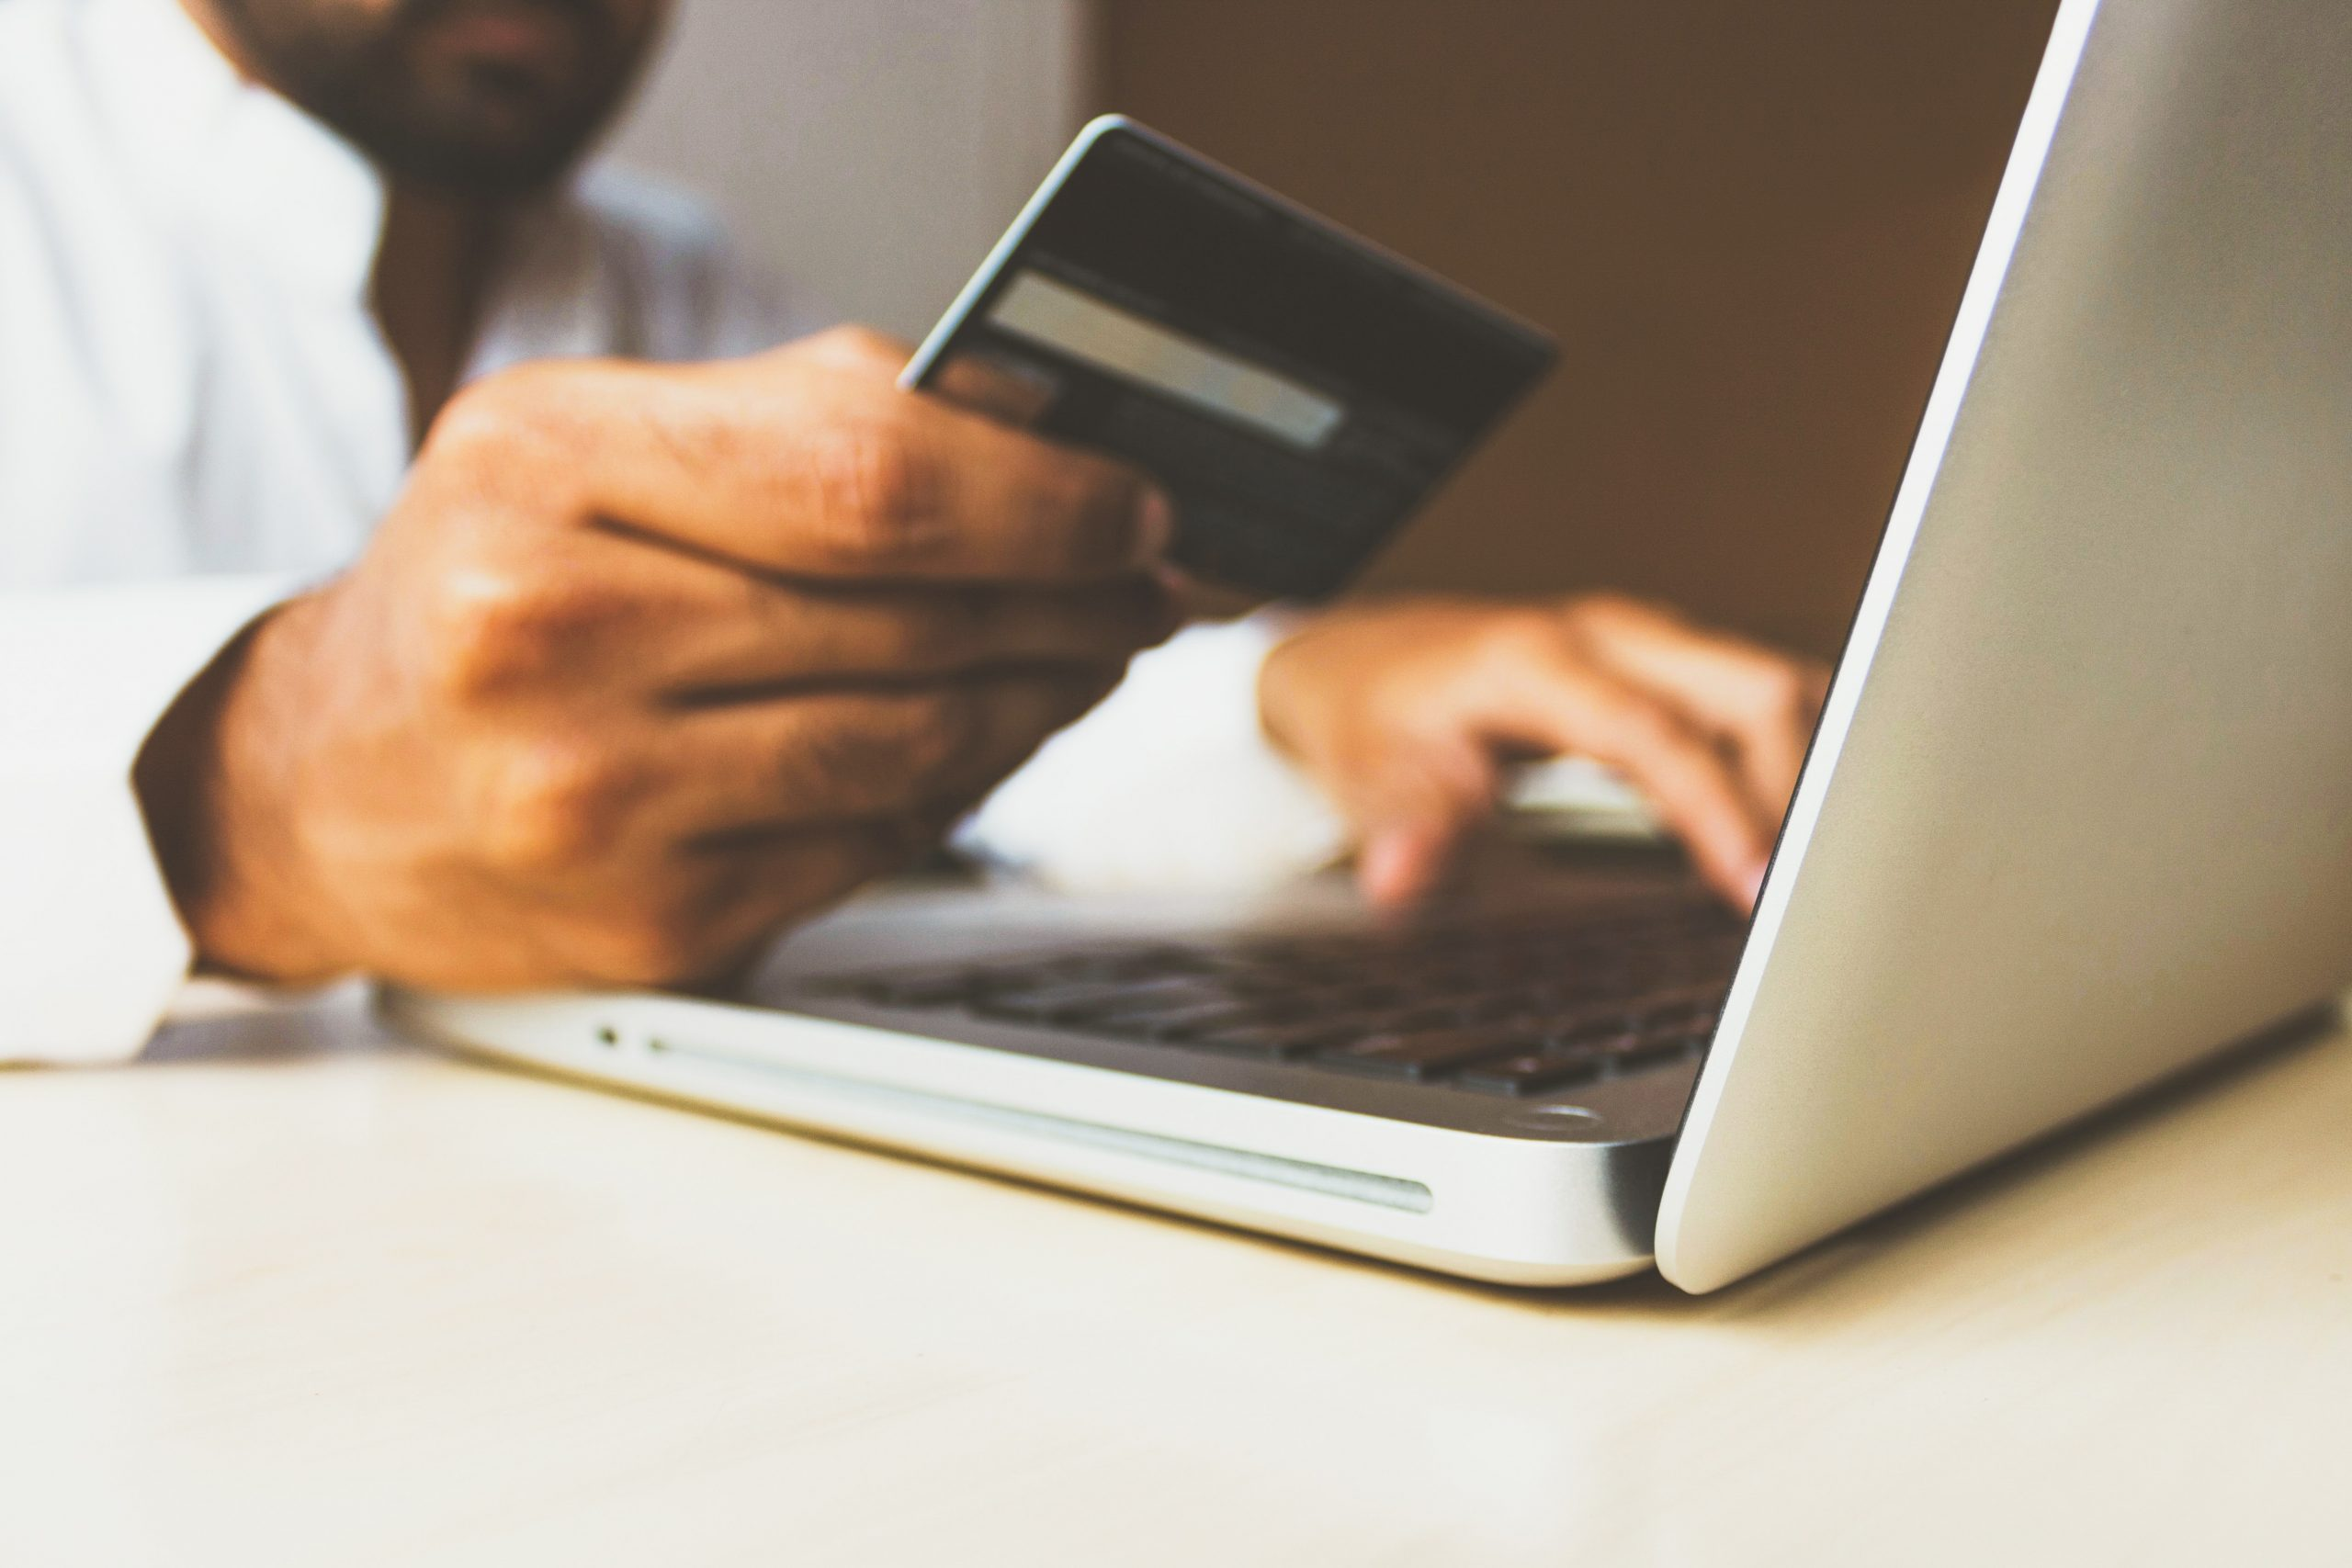 person using laptop computer holding a debit card